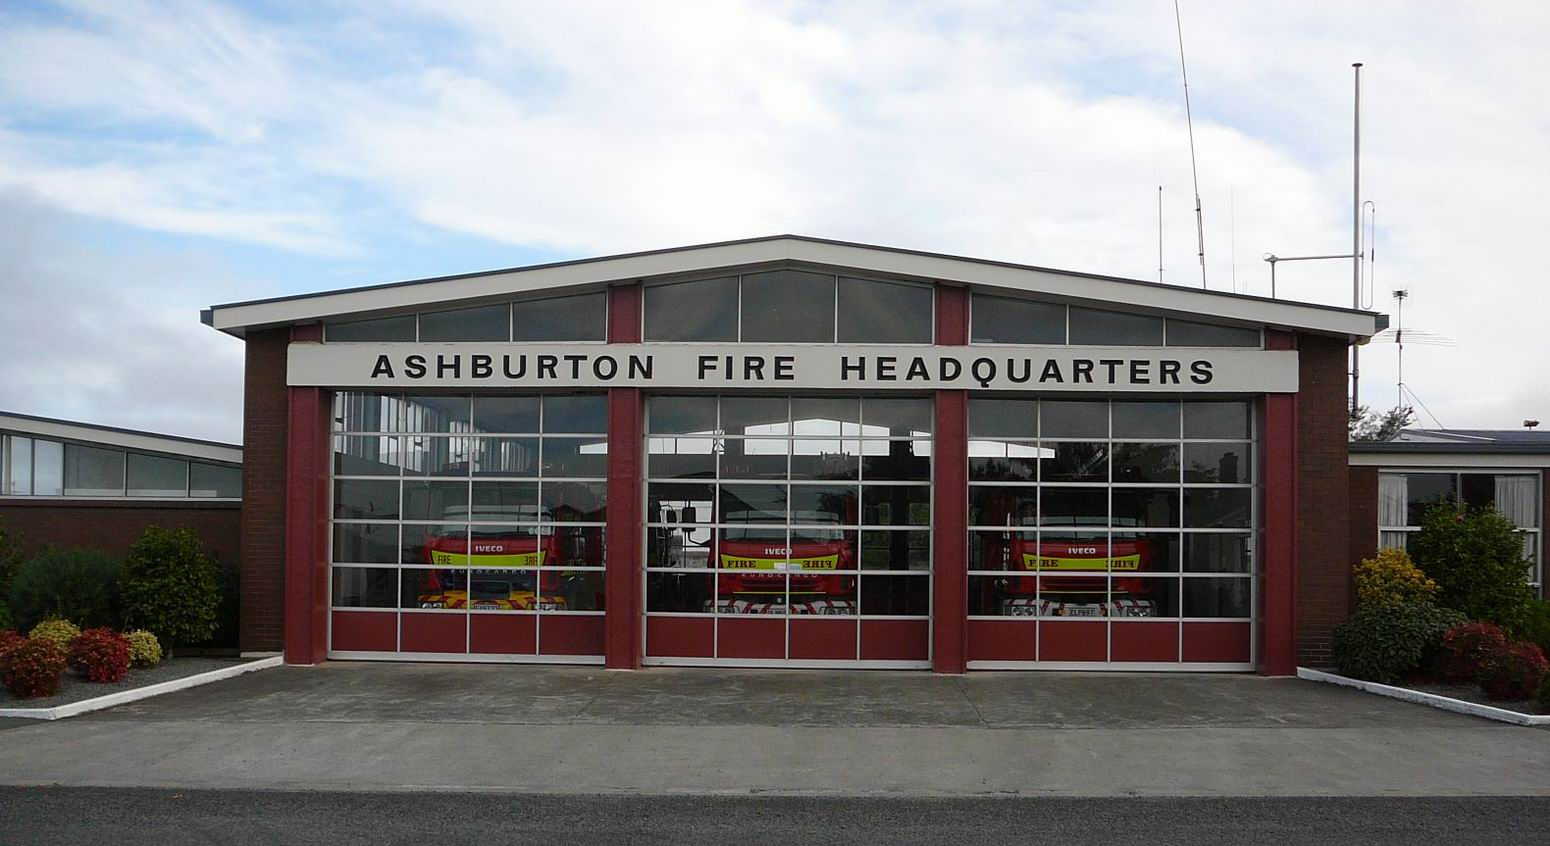 Ashburton Volunteer Fire Brigade Station 62